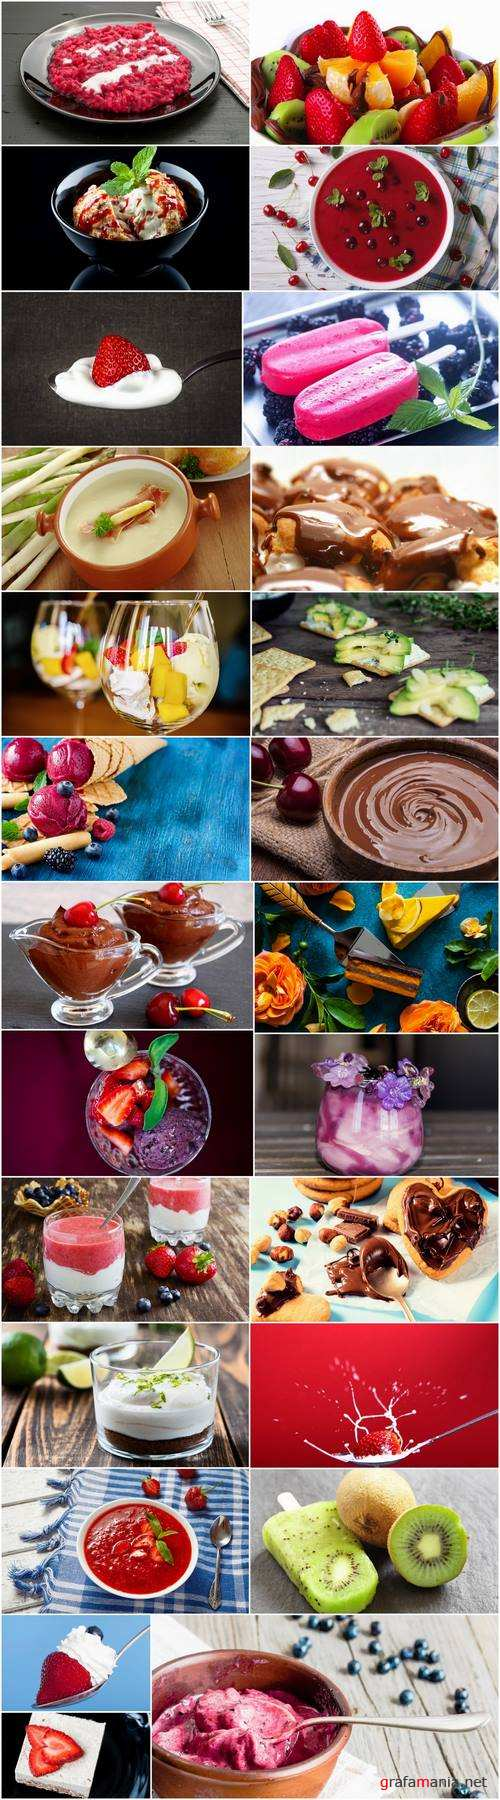 Ice cream cream curd dessert fruit milk 25 HQ Jpeg